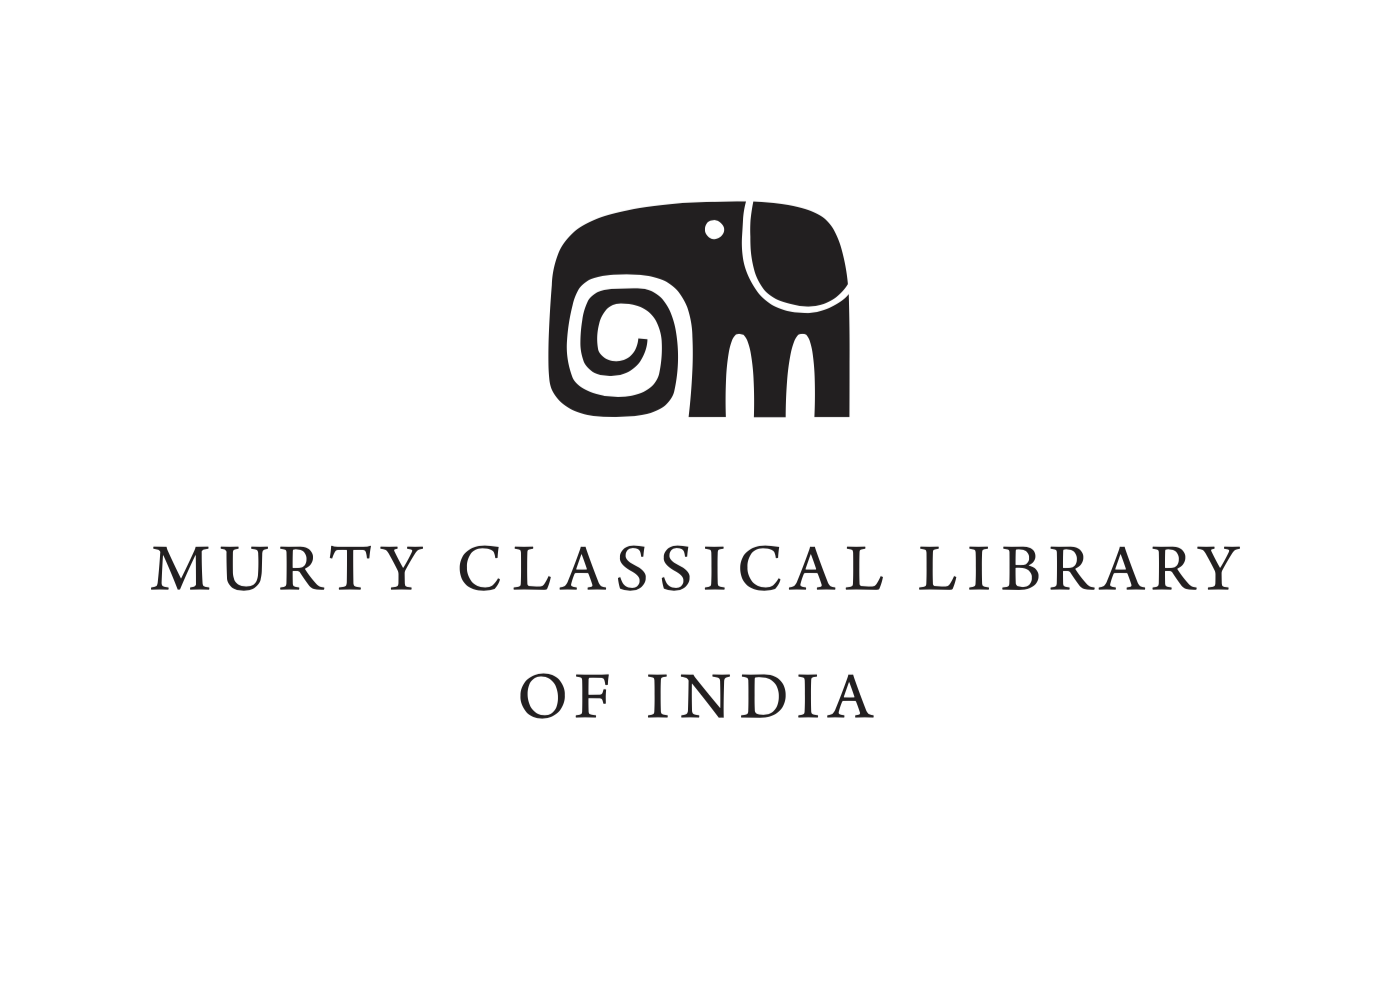 Logo of the Murty Classical Library of India